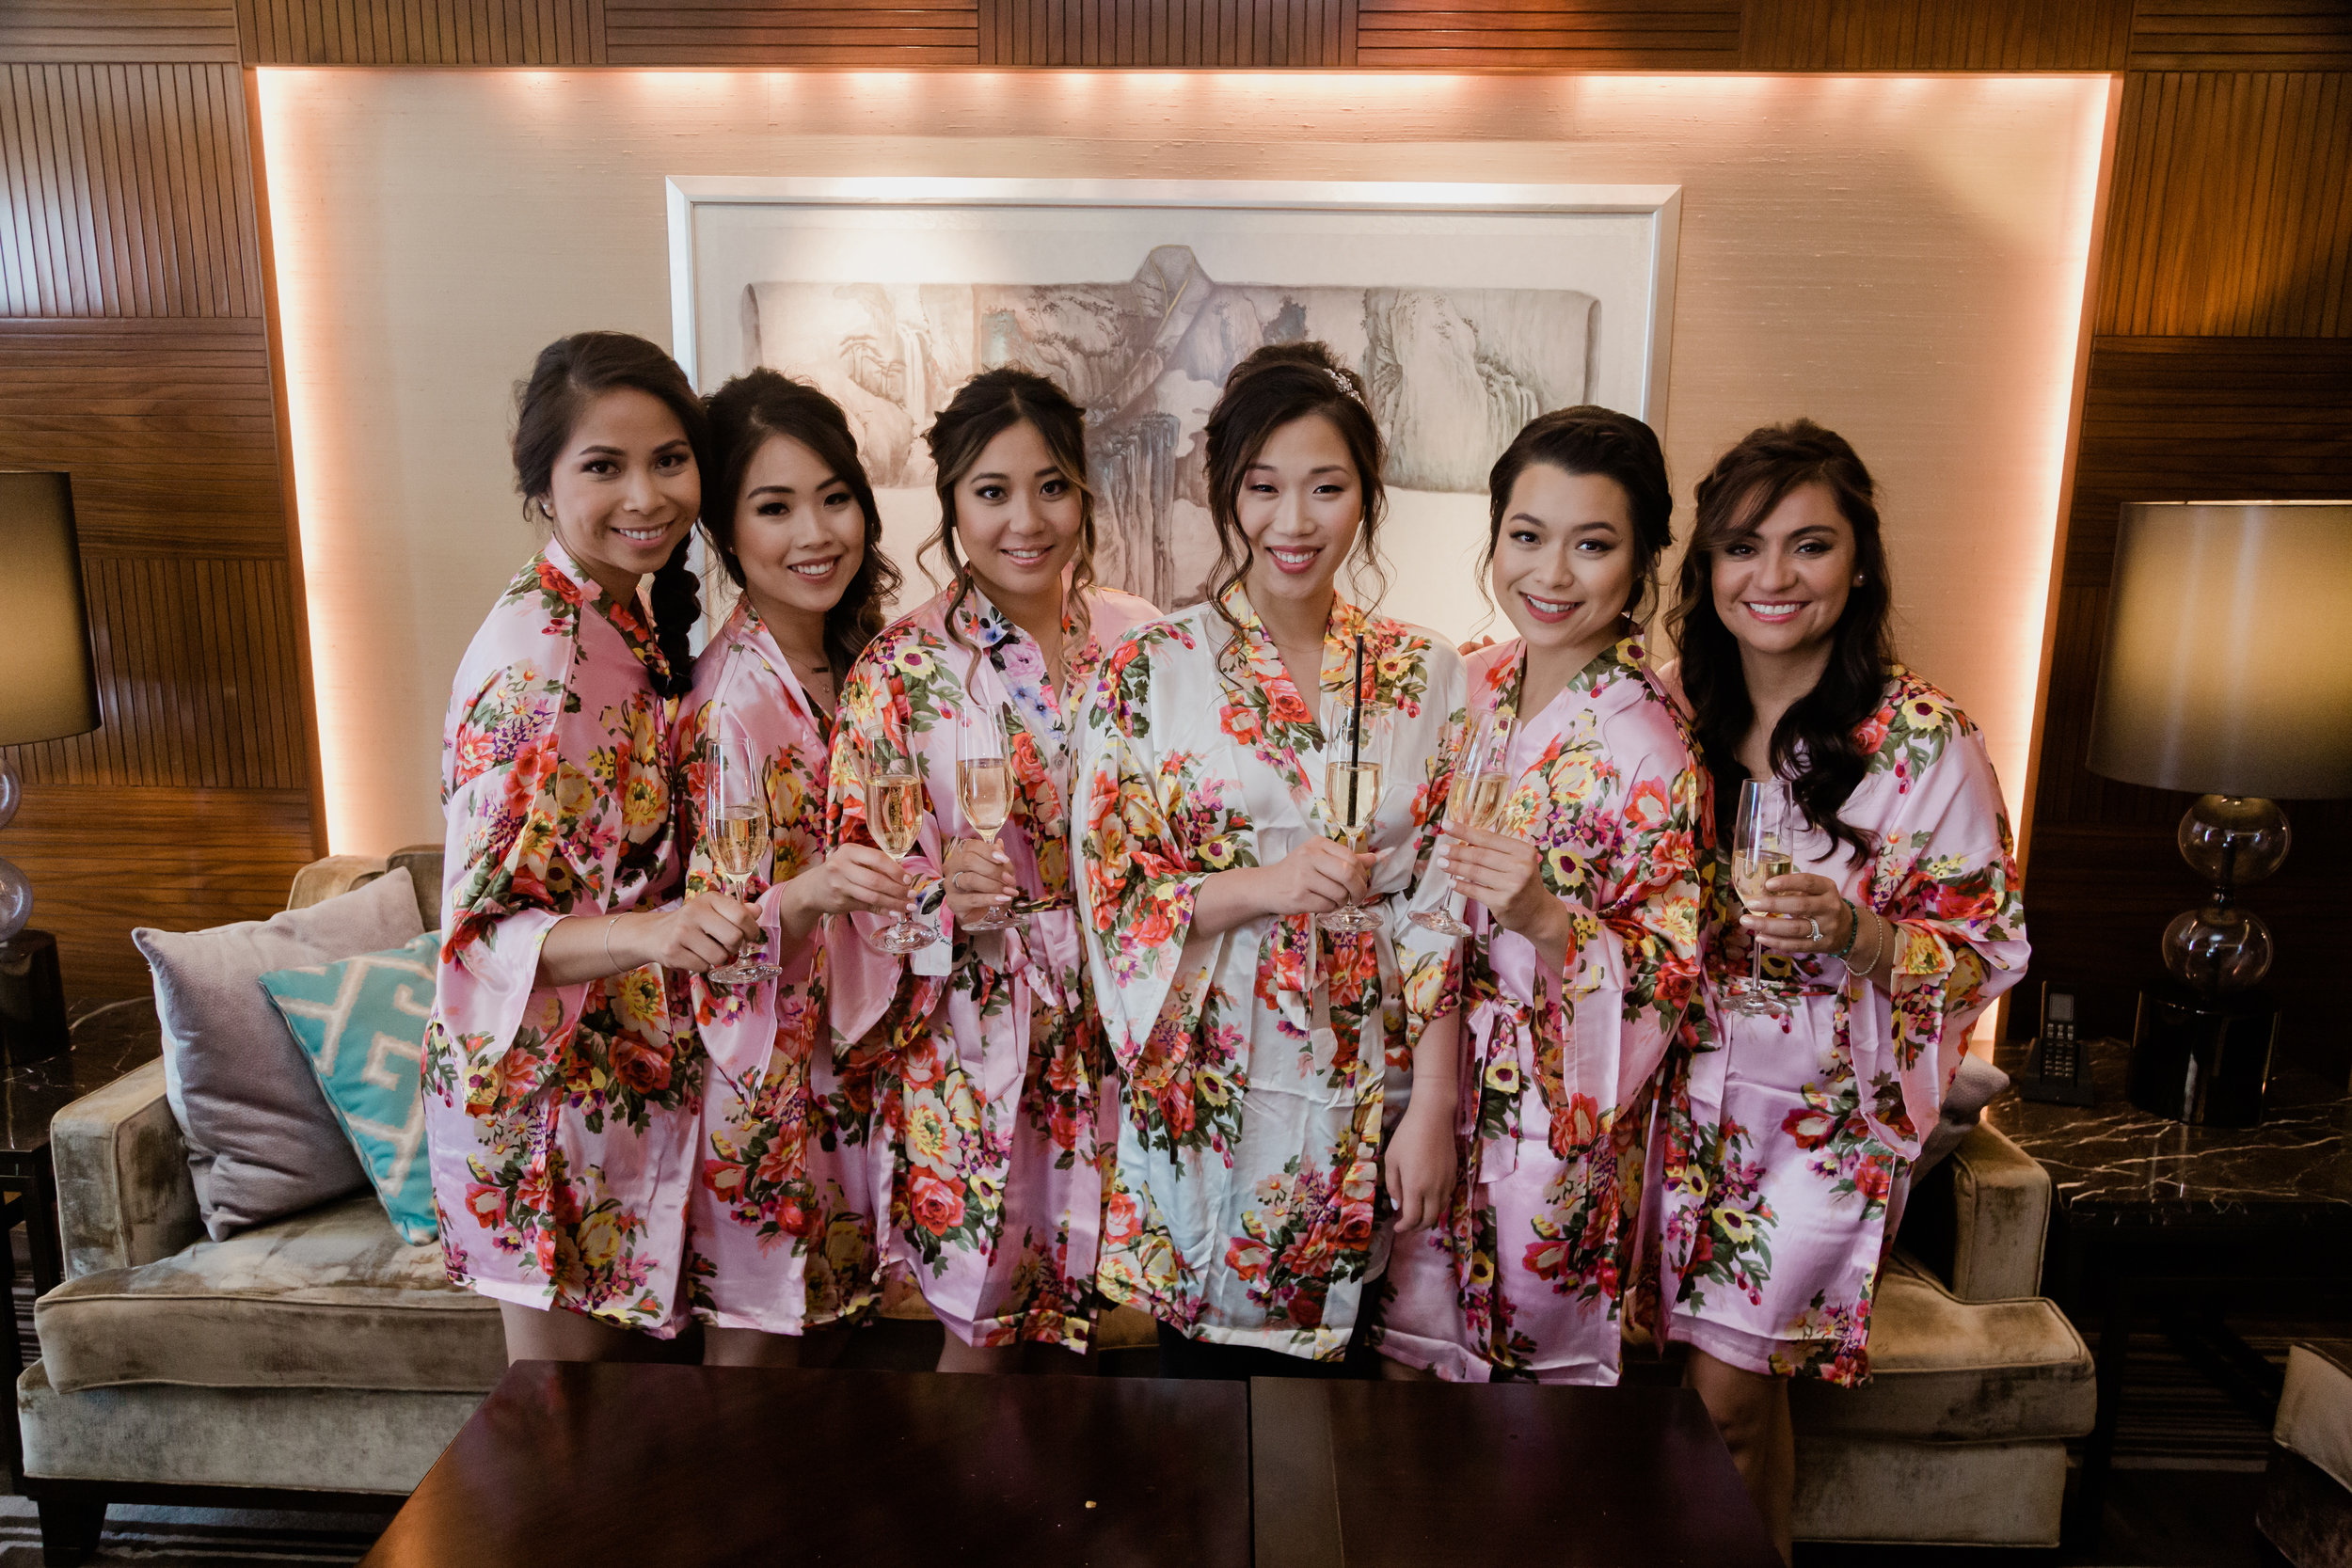 Beautiful bridesmaids in floral robes. Wedding Planning and Event Design by Andrea Eppolito www.andreaeppolitoevents.com. Photos by Adam Frazier.